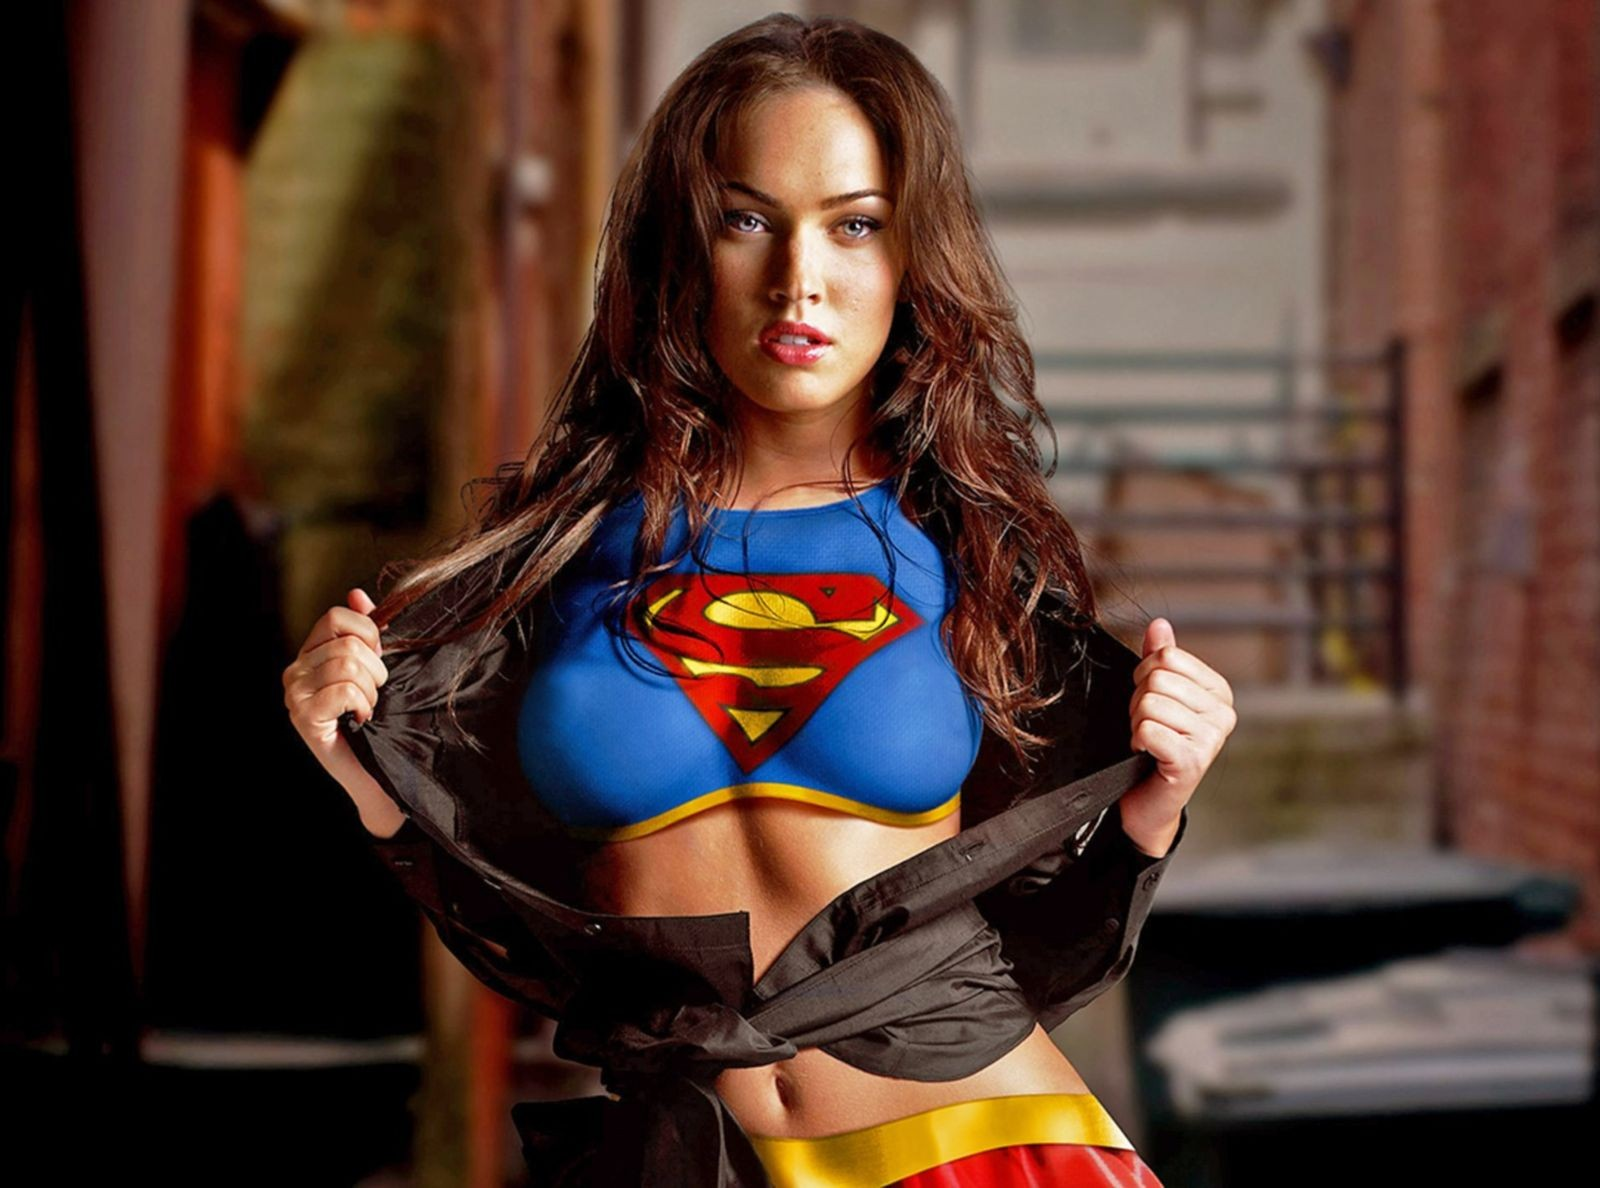 High Definition 3d Wallpaper Free Download Megan Fox Supergirl Original 1080p Wallpaper Desktop Hd